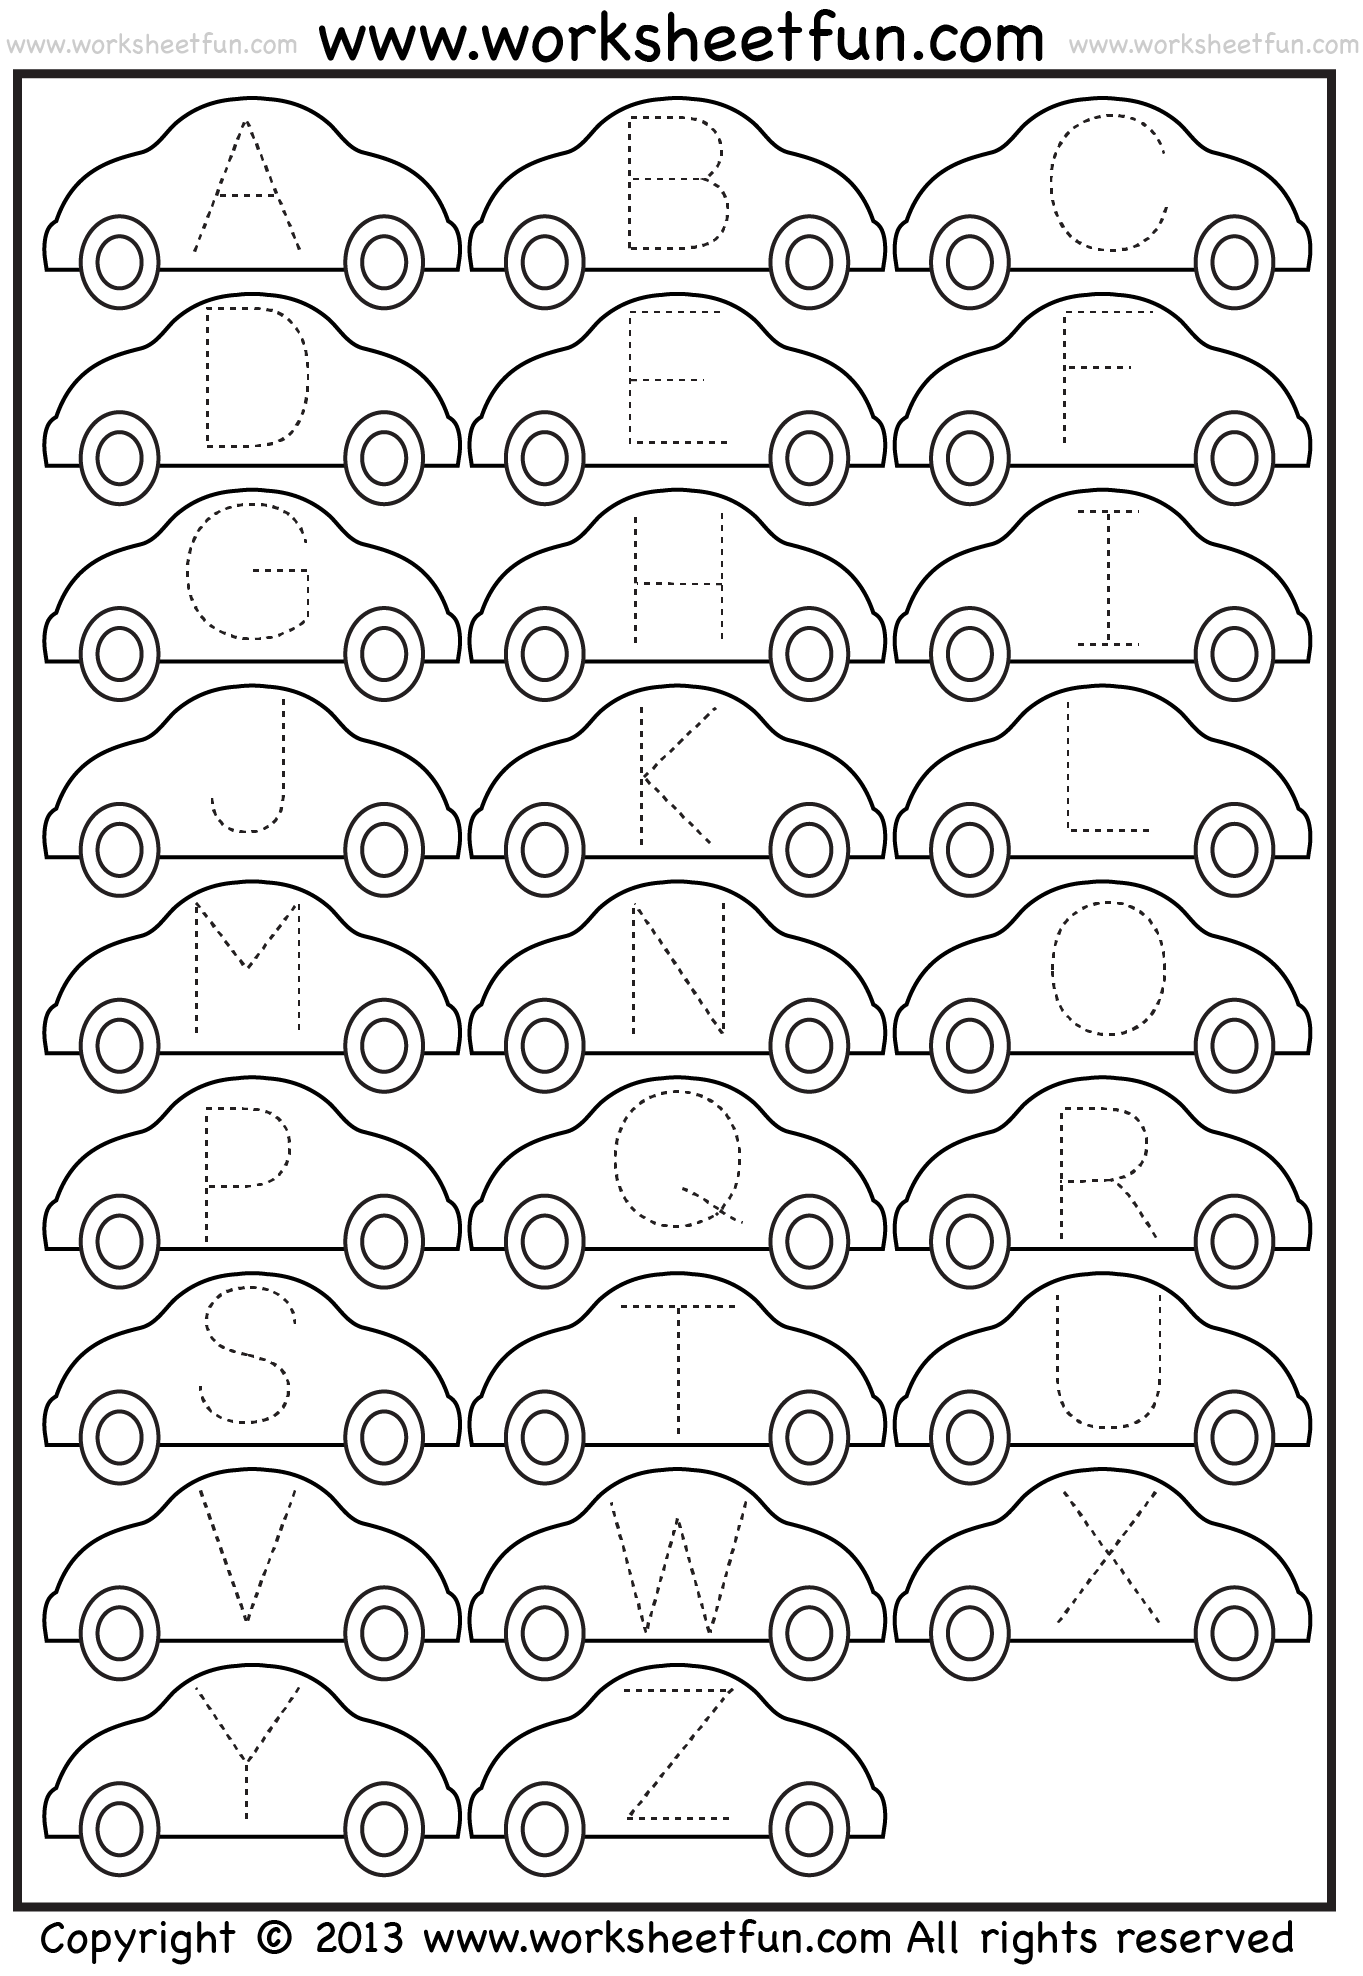 worksheet Tracing Letter Worksheets tracing letter free printable worksheets worksheetfun worksheet car